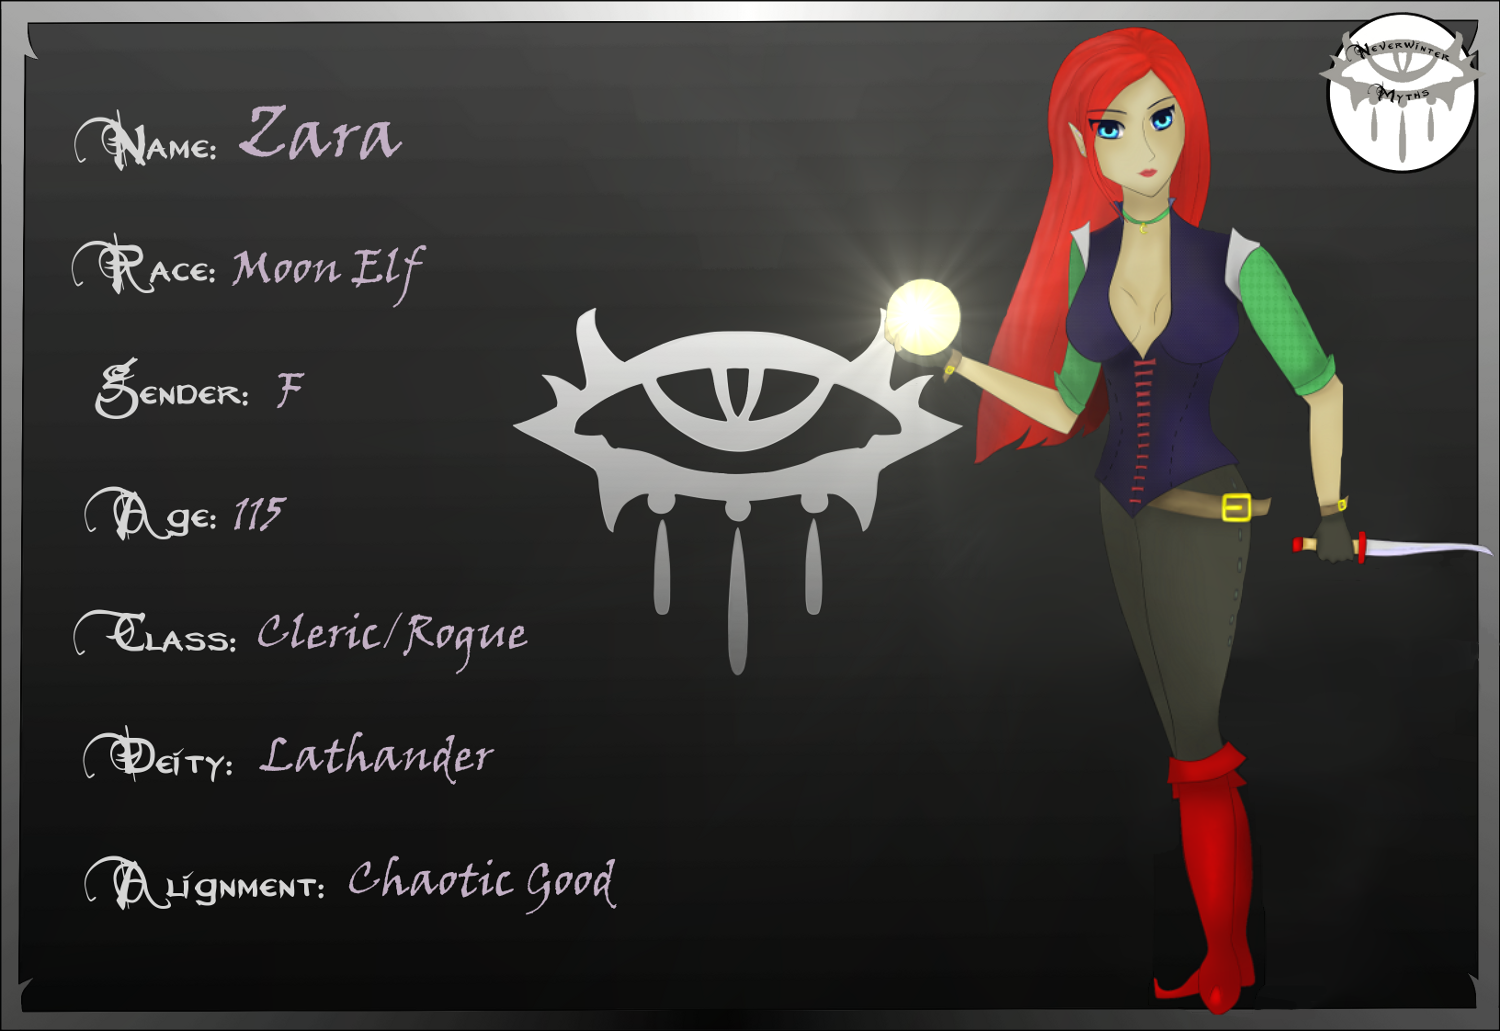 Zara - character sheet by Zara-Arletis